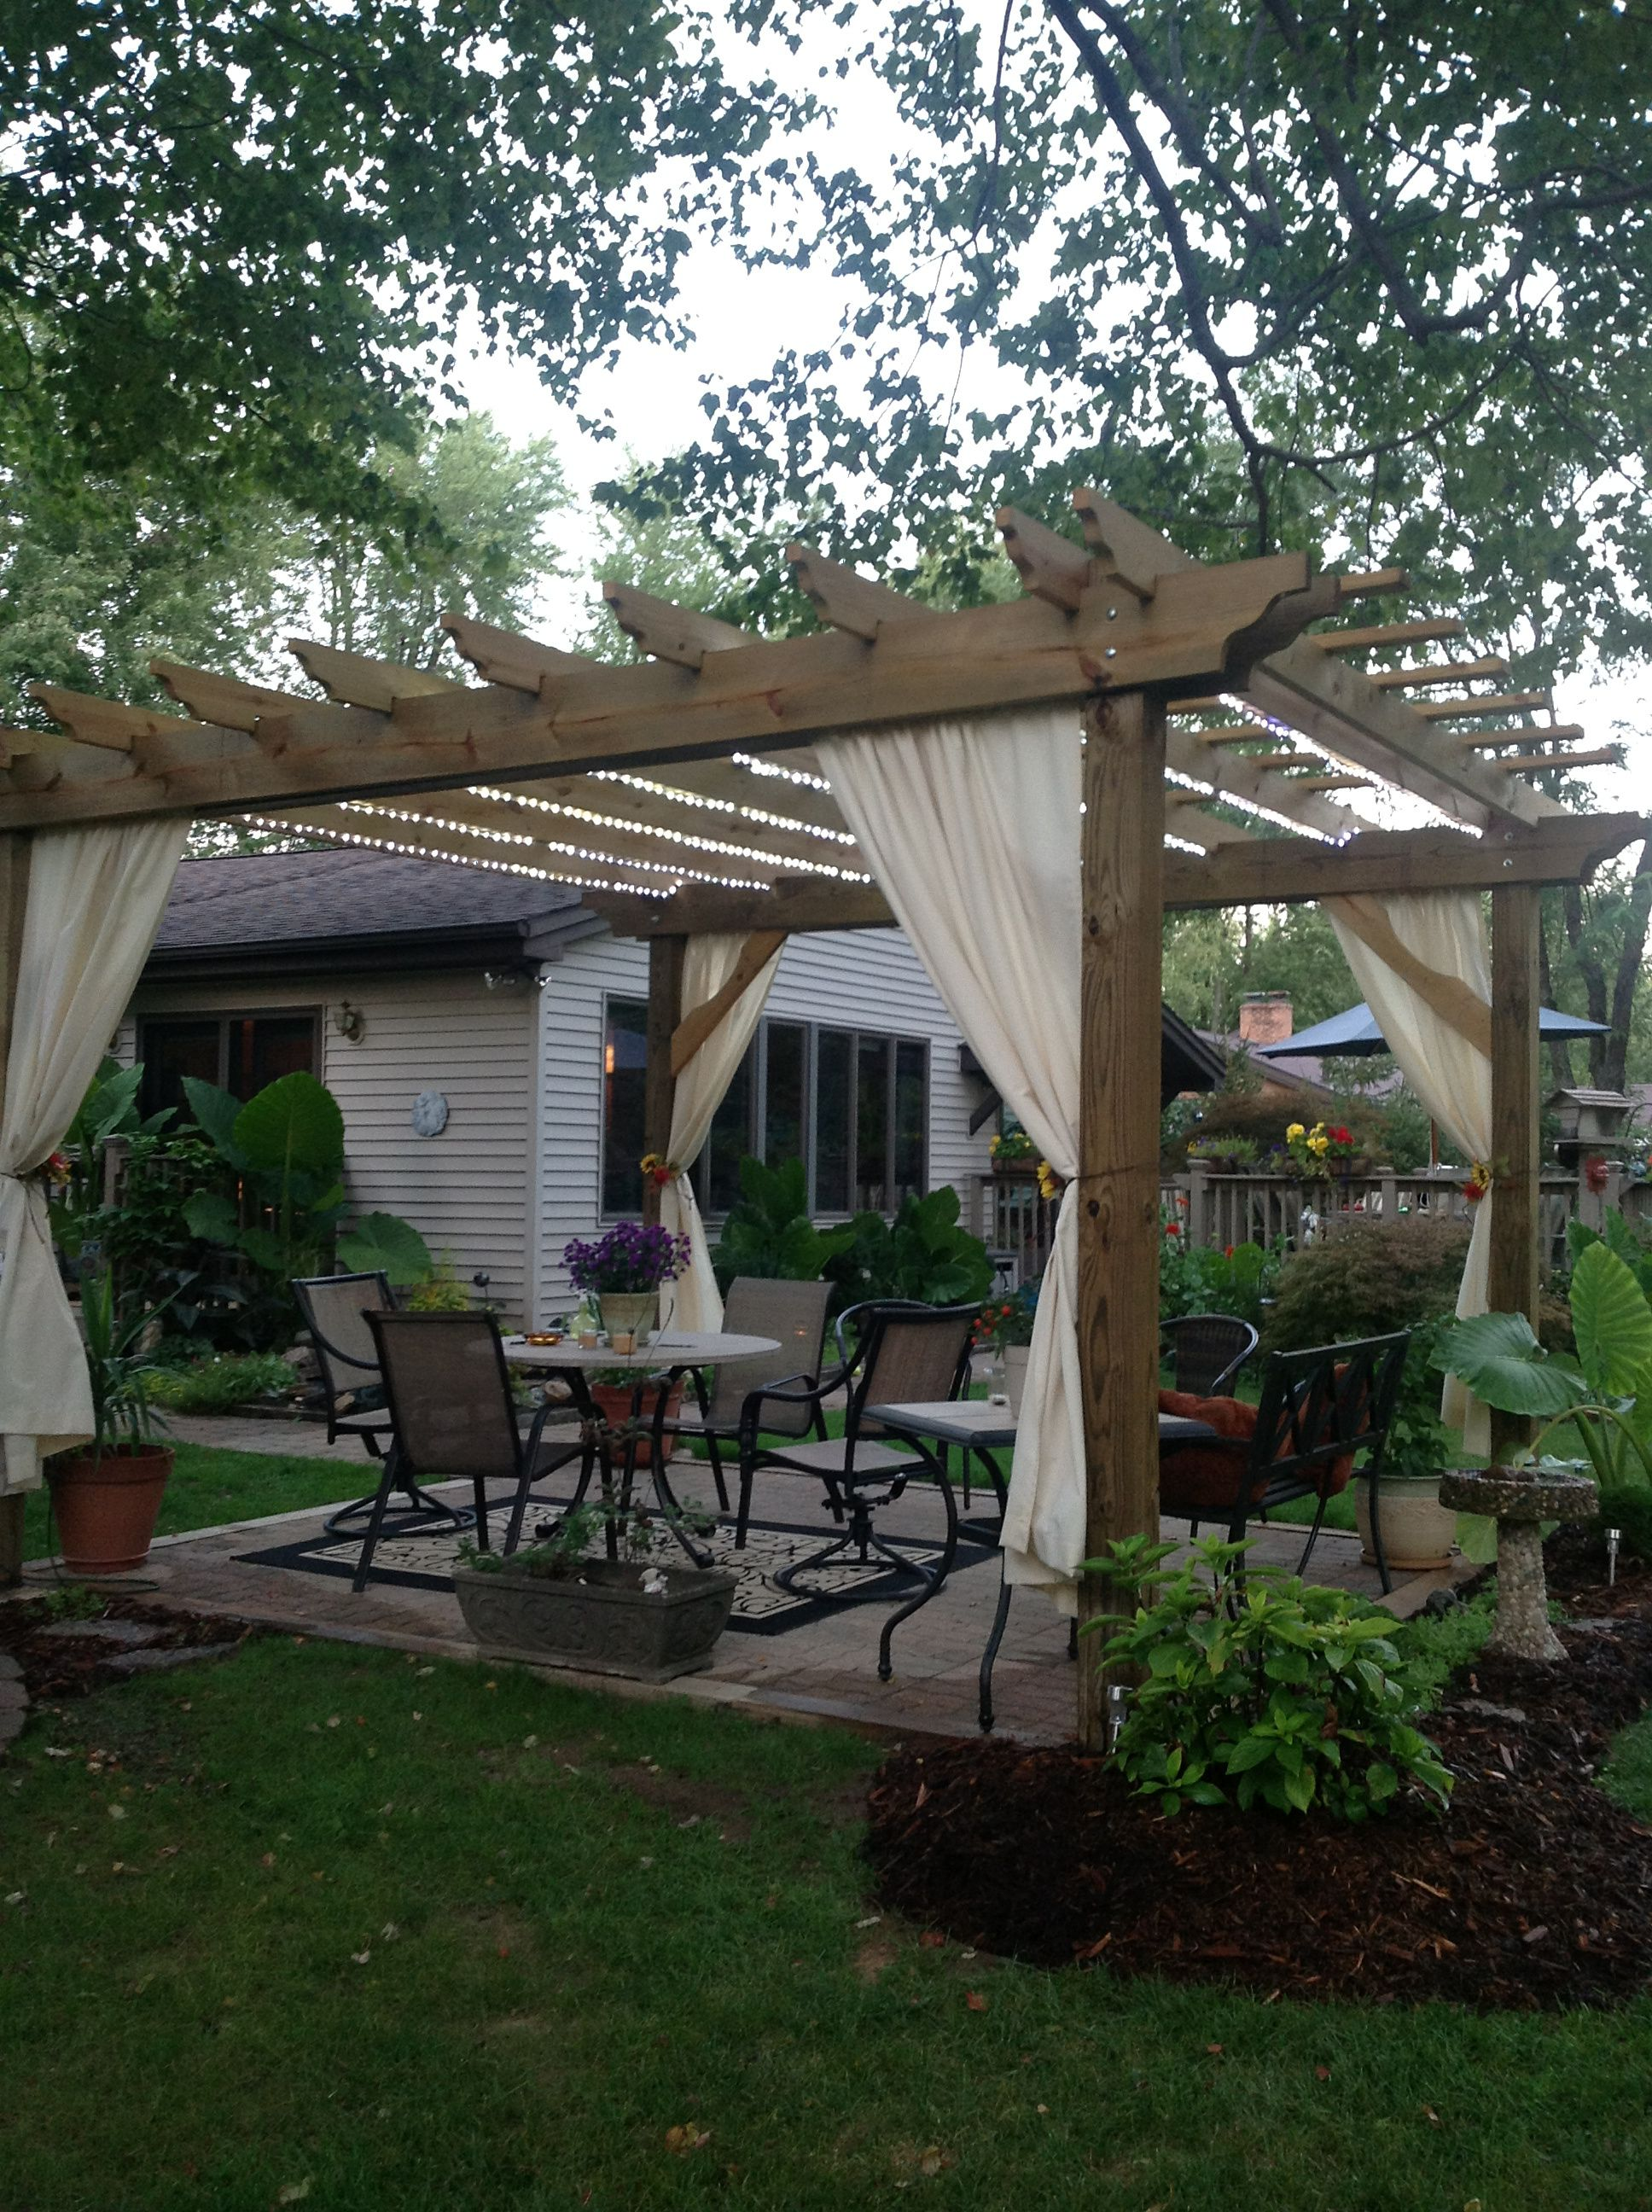 creating your own outdoor paradise building a pergola to enjoy the